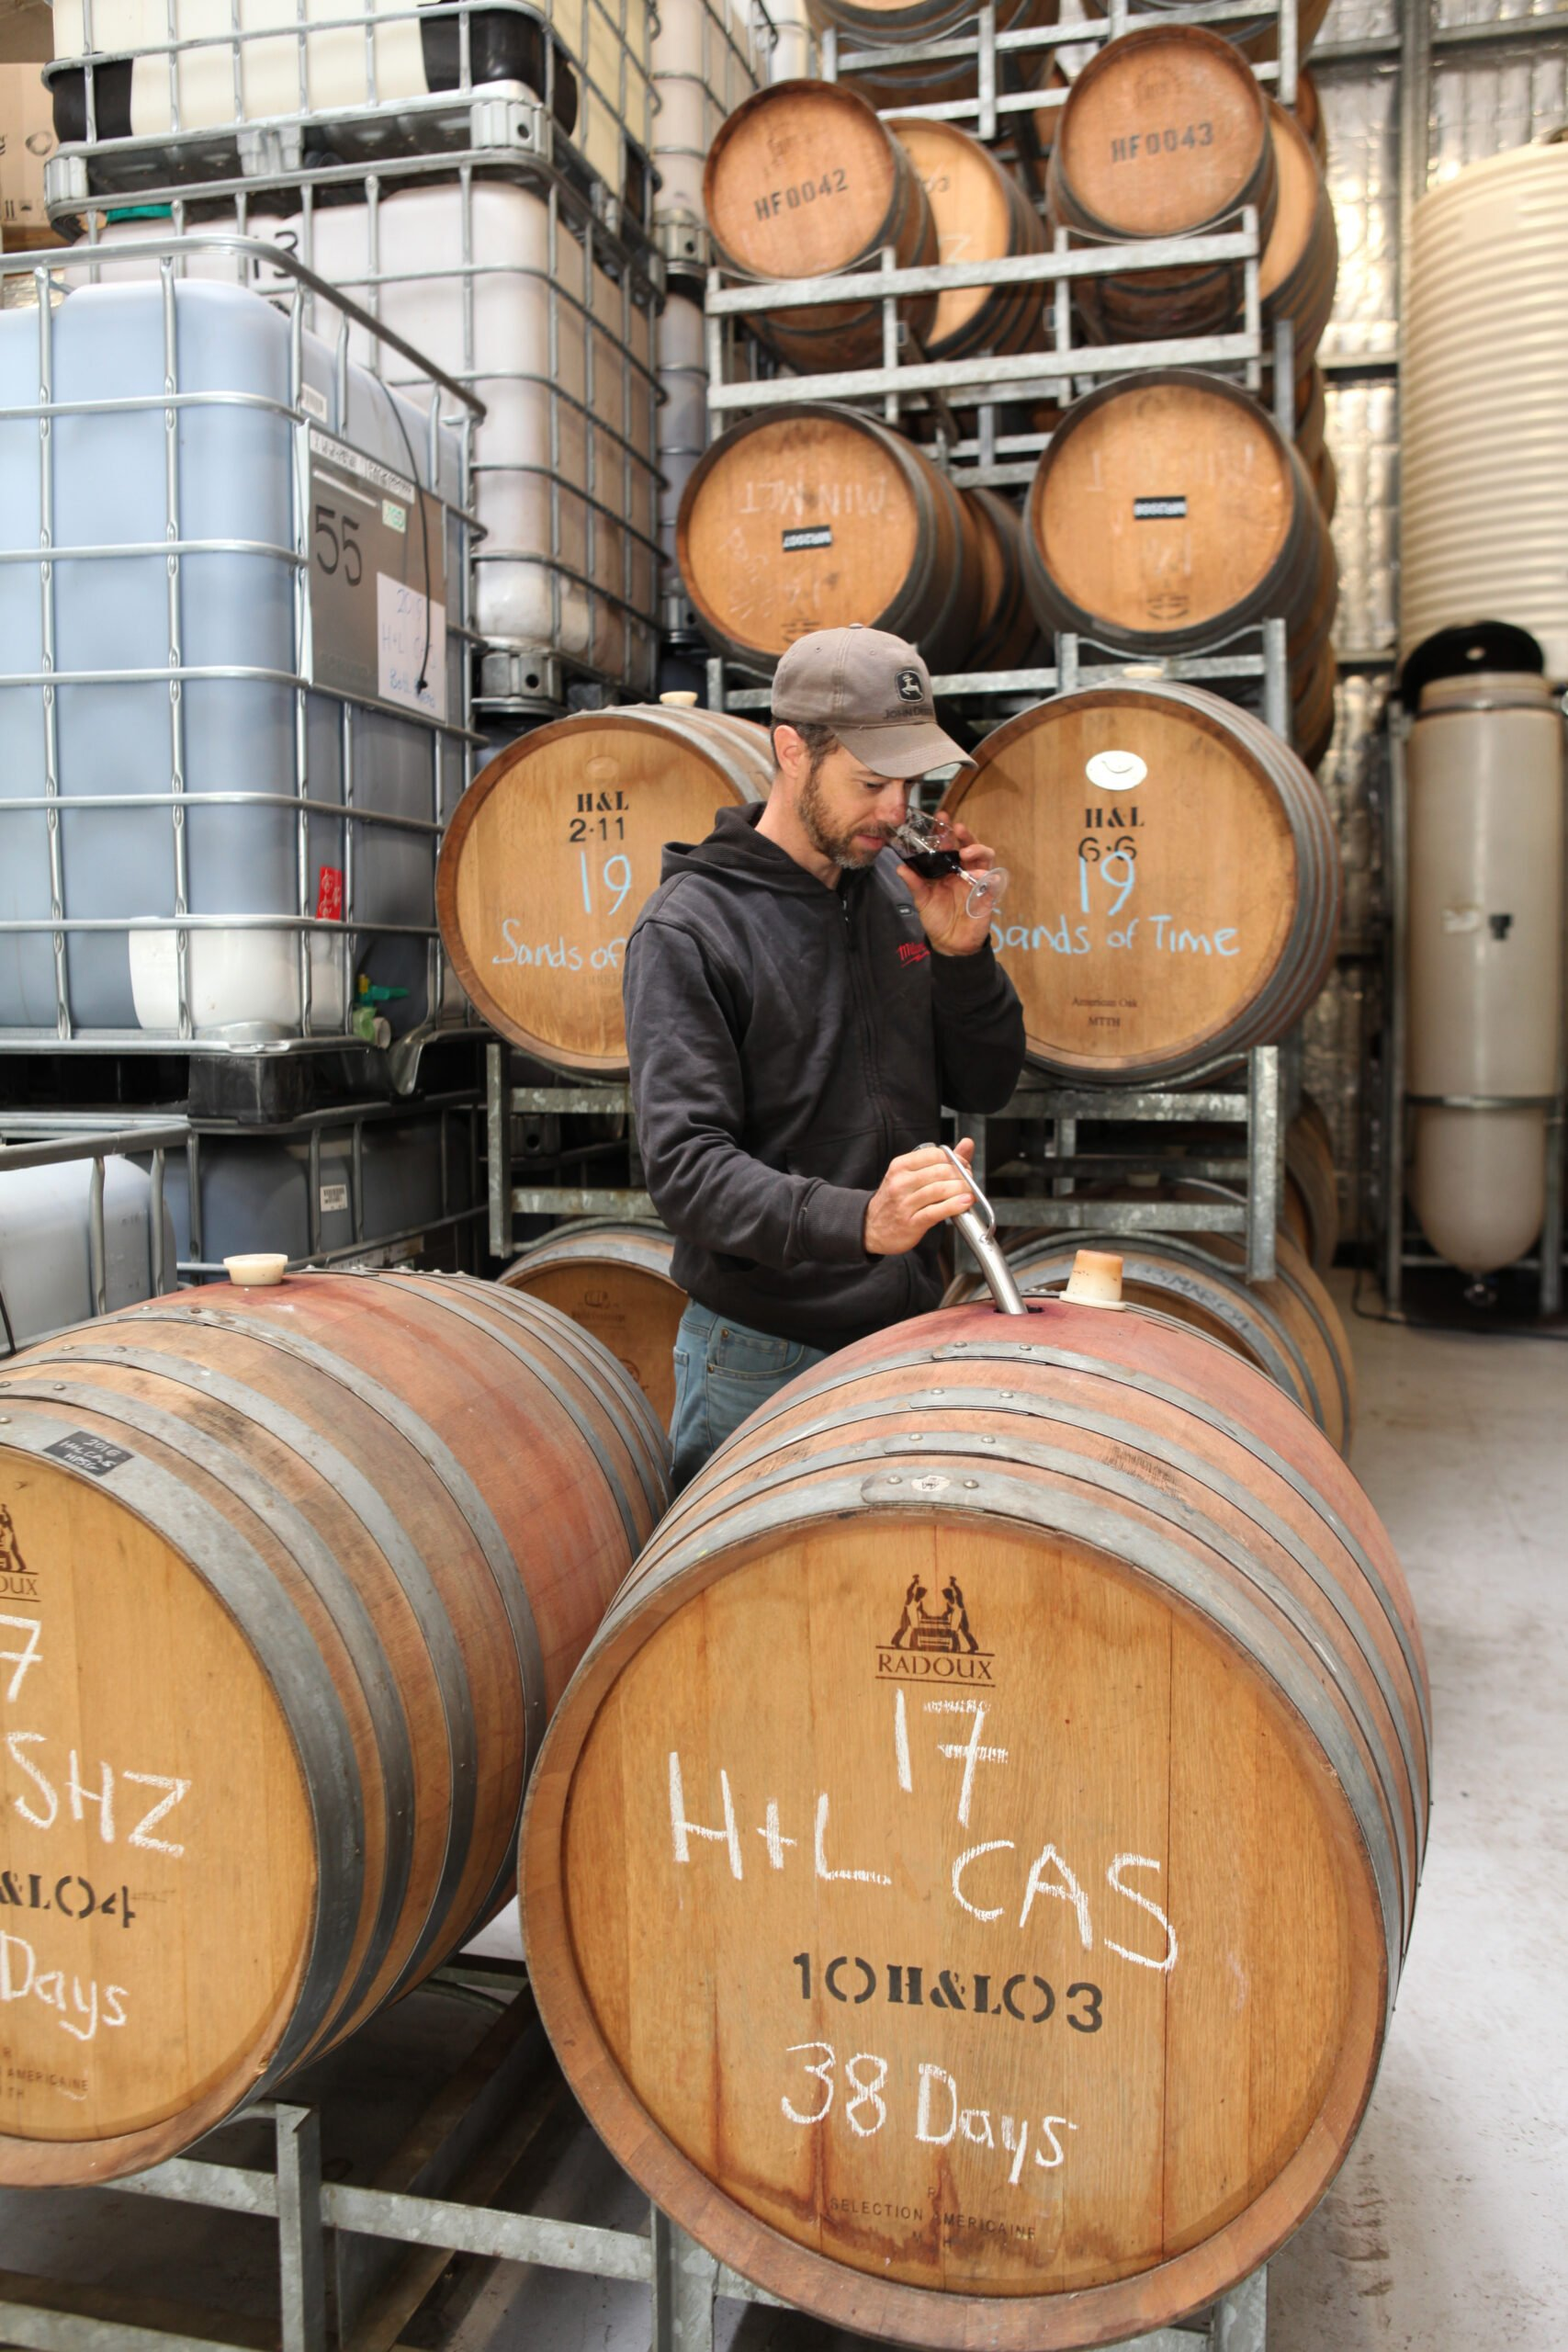 Winemaker Wine tasting from American and French Oak Barrels